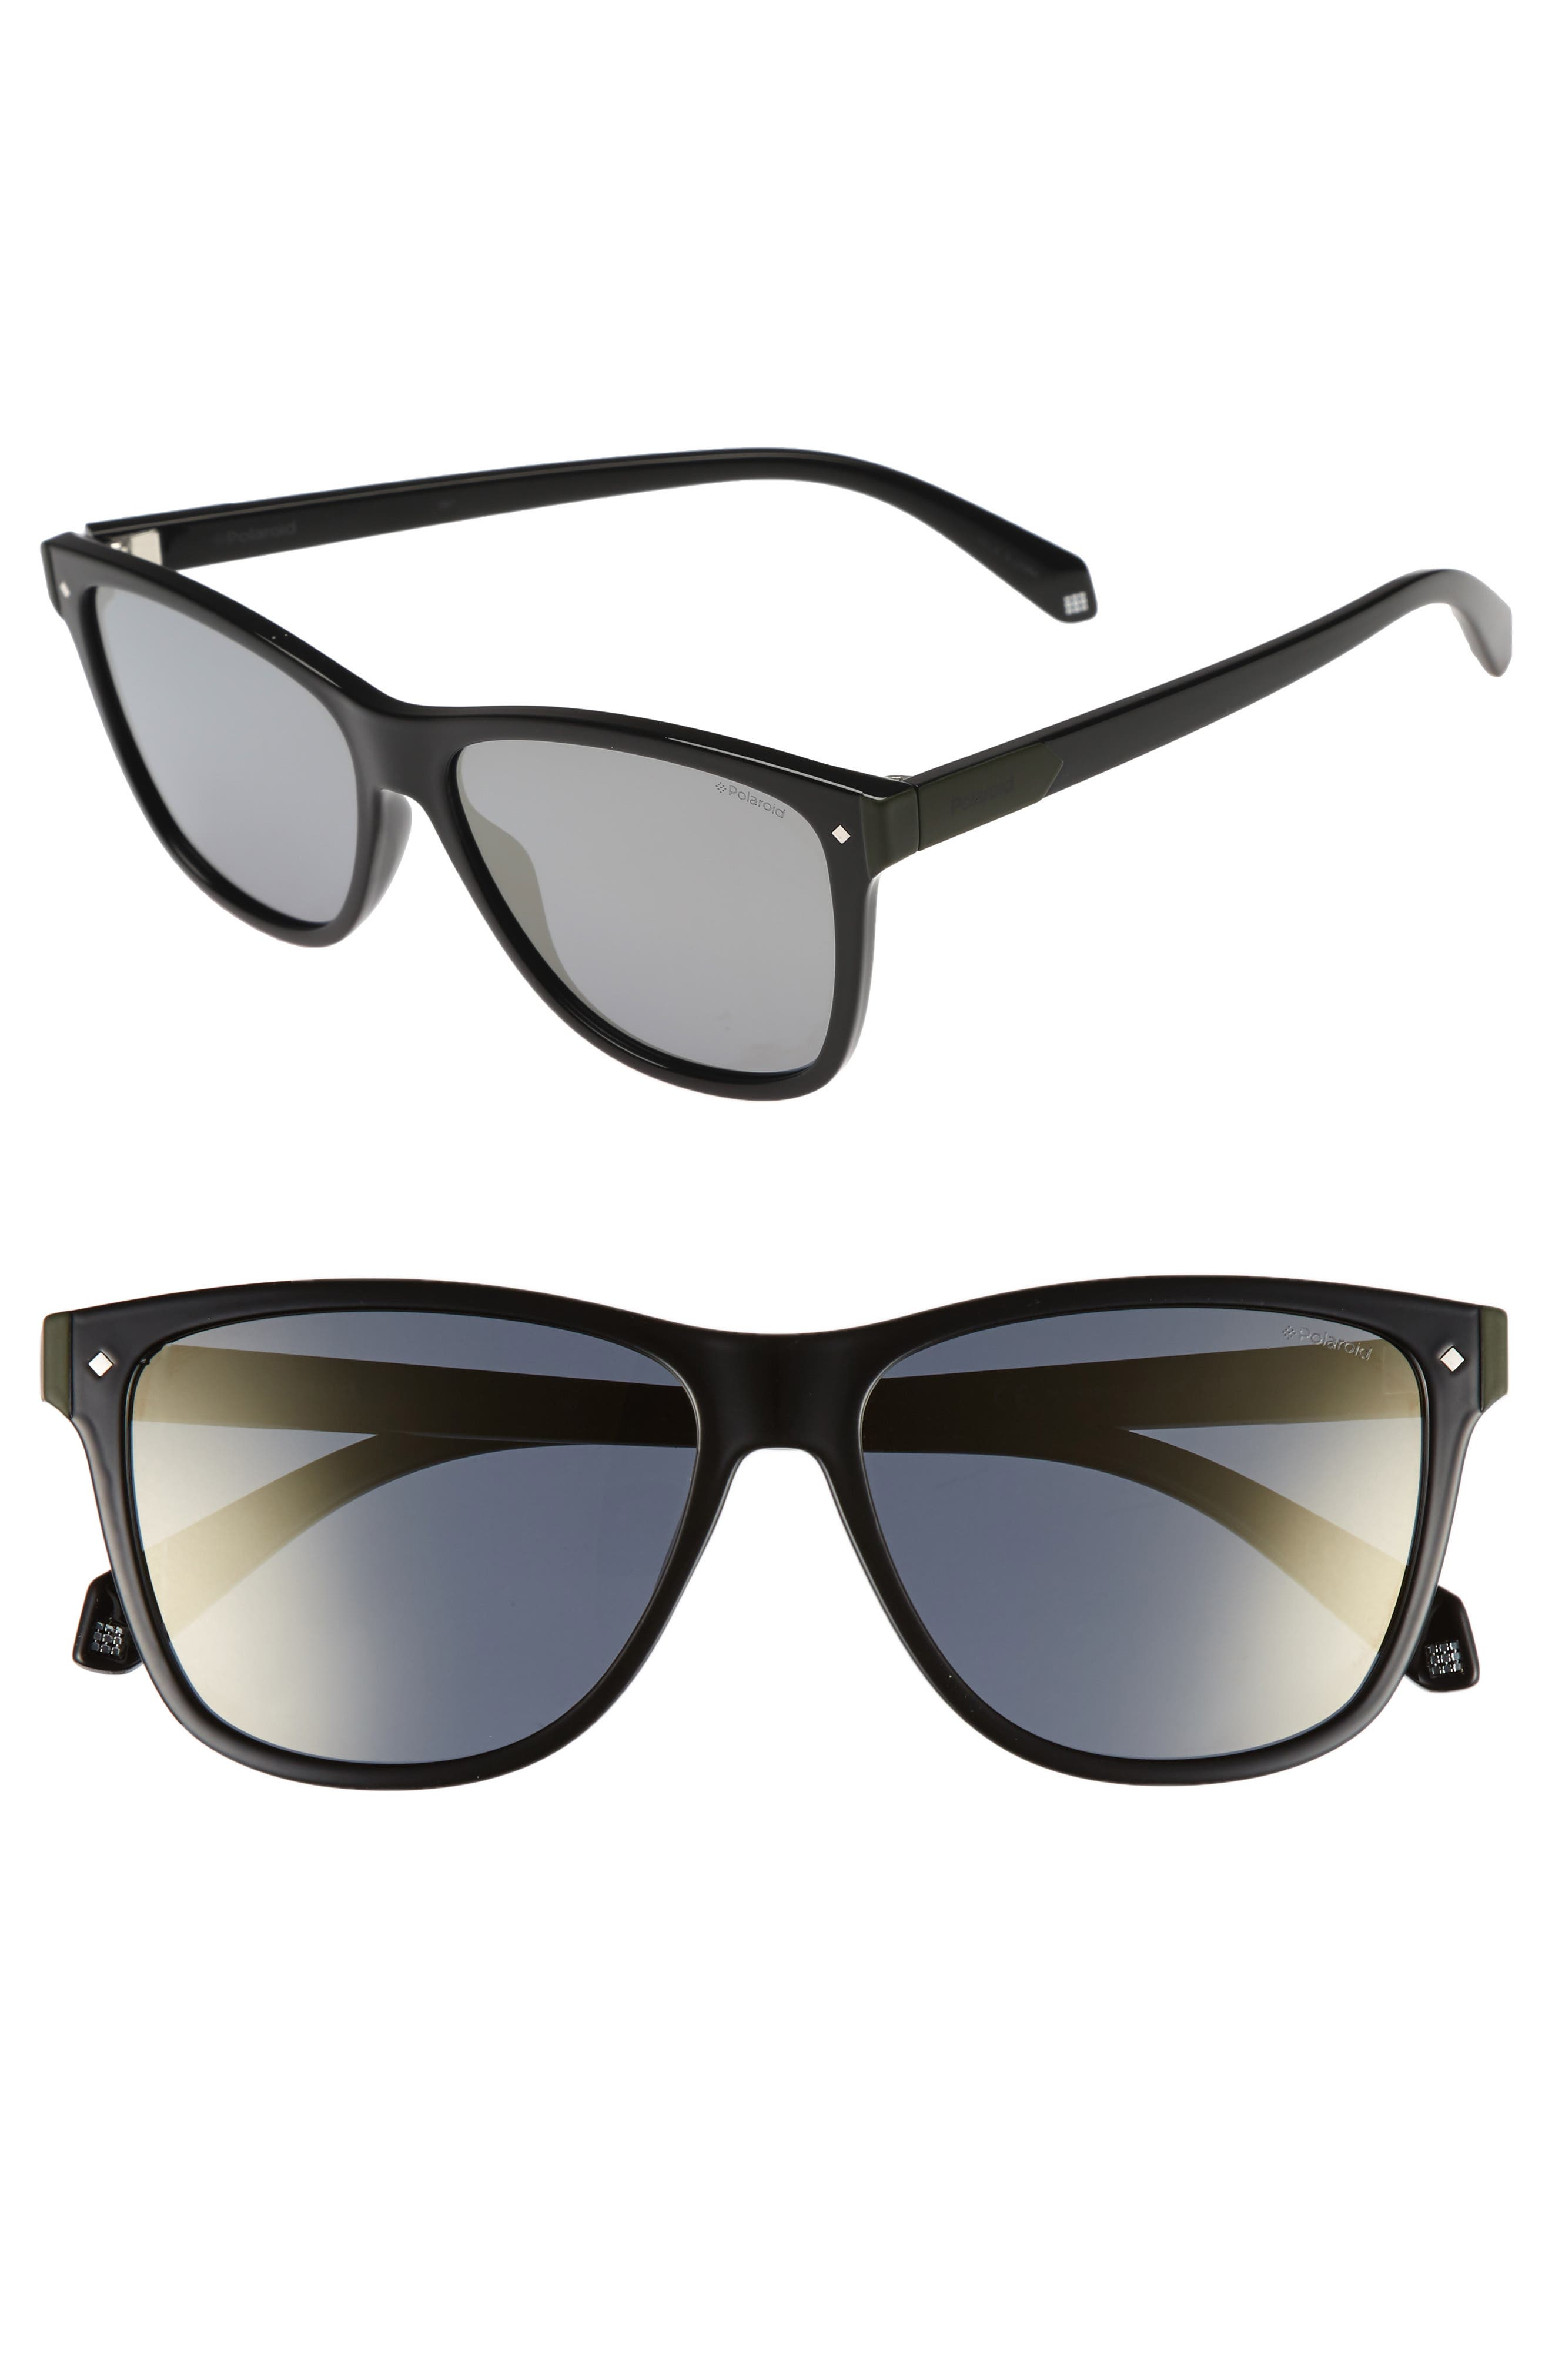 56mm Polarized Sunglasses,                             Main thumbnail 1, color,                             002